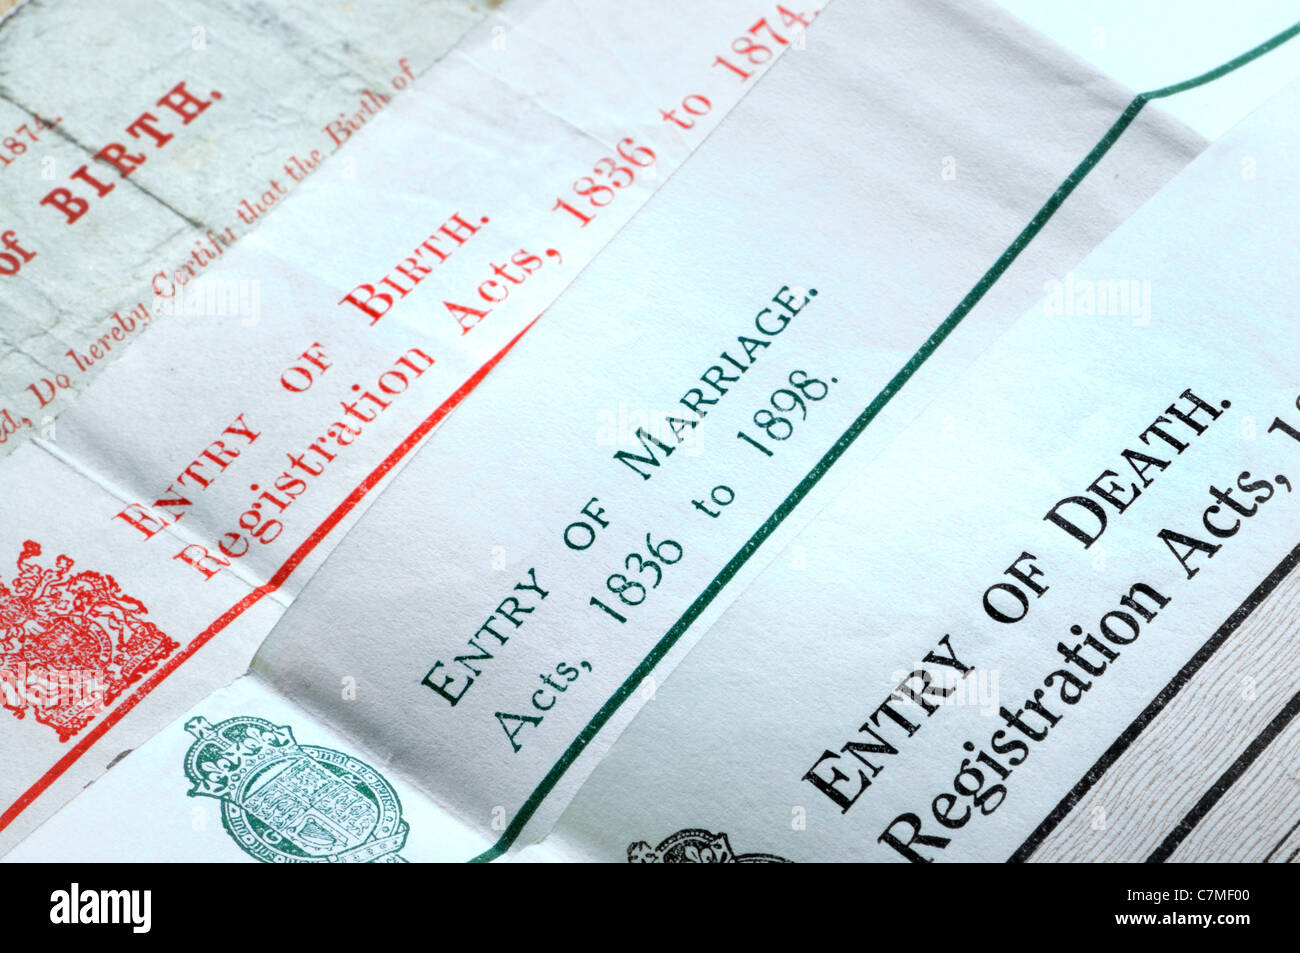 Genealogy documents - Certificates of birth, marriage and death - Stock Image